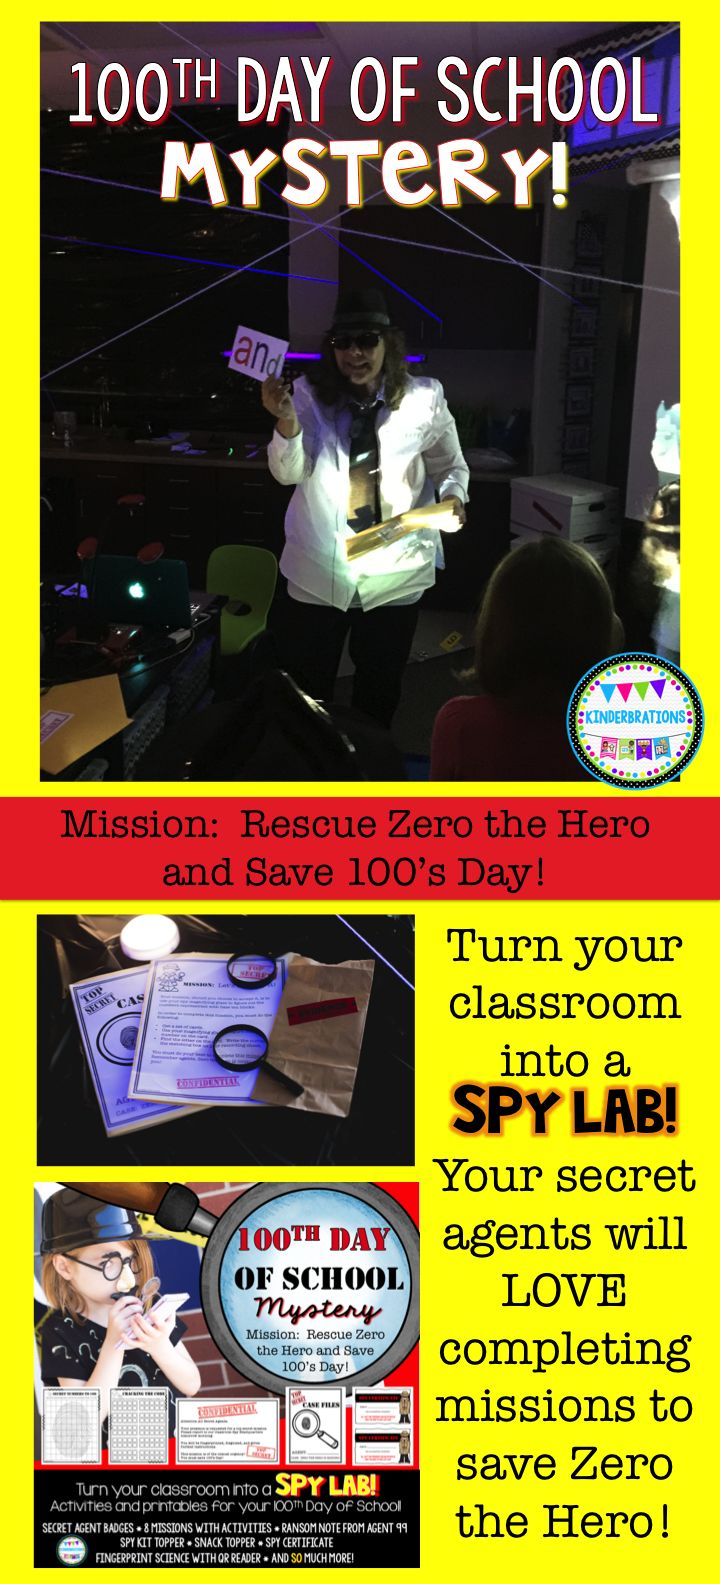 Are you looking for a unique way to celebrate 100's Day in kindergarten? Turn your classroom into a spy lab! Zero the Hero has been taken by Devious Agent 99 in an effort to stop the 100th day of school from happening. Your students will become secret agents as they work on missions to gain clues as to Zero the Hero's whereabouts. Lots of ideas, hands-on activities, and printables to make your 100th day of school unforgettable!